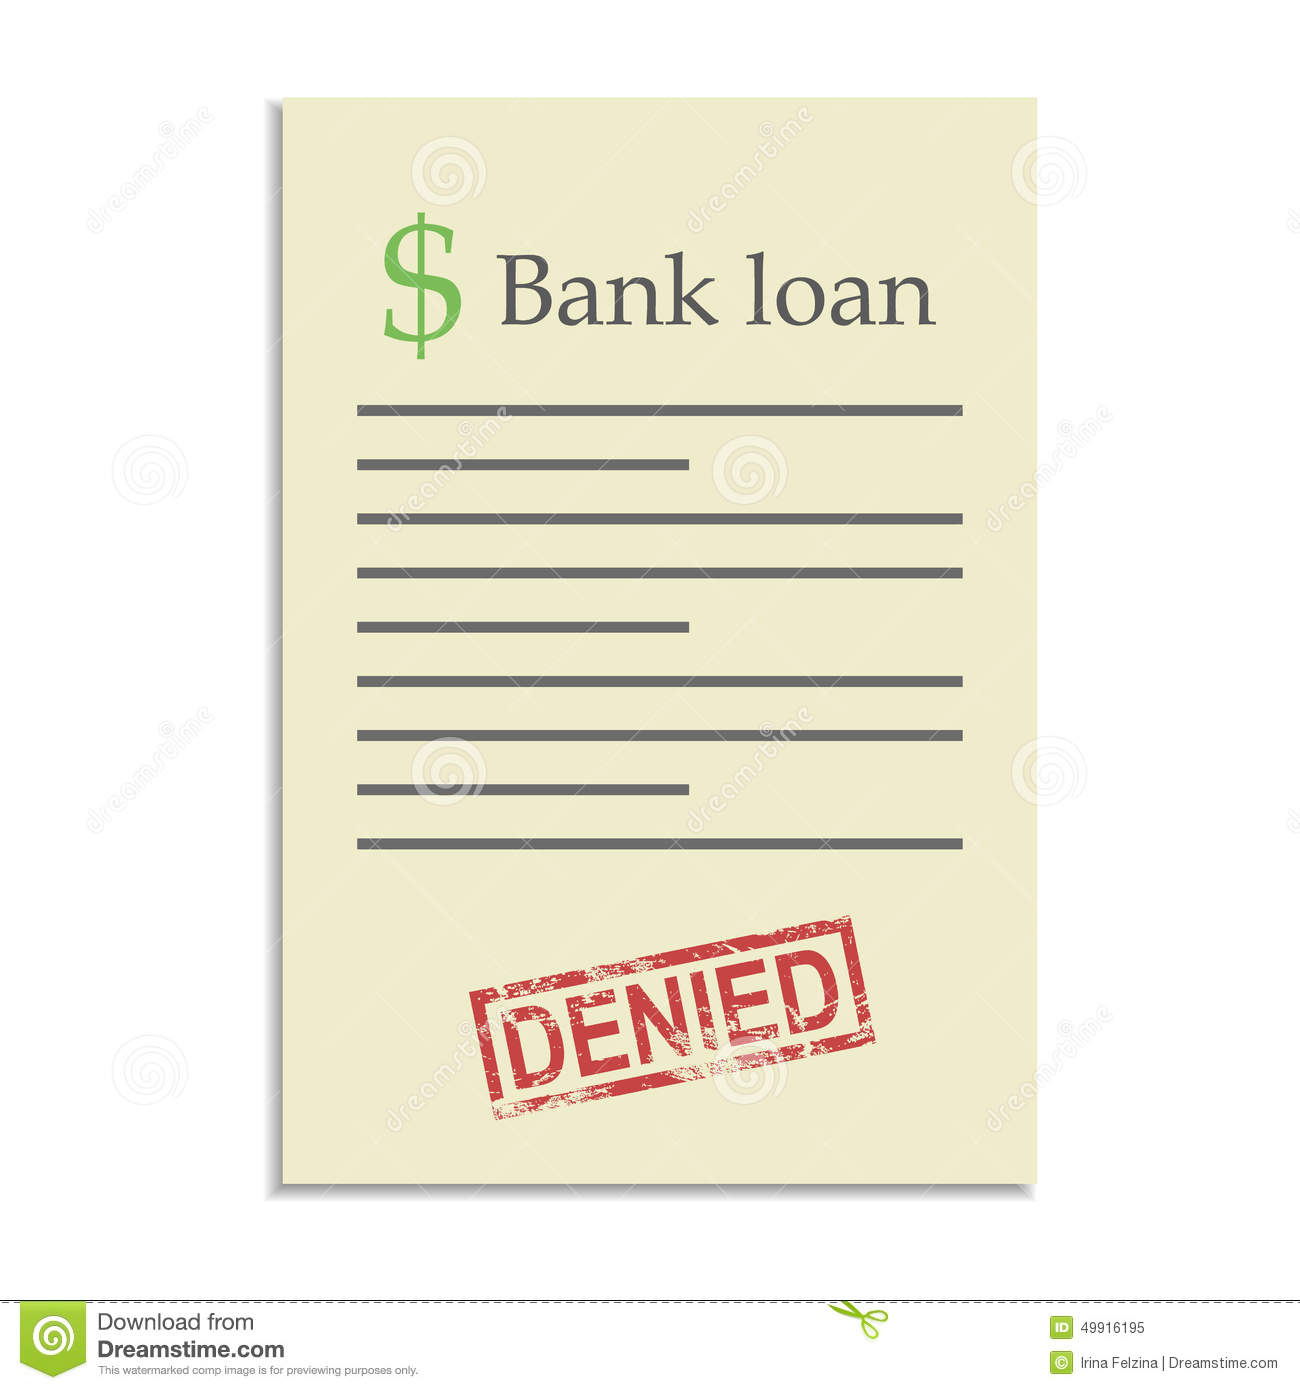 Bank Loan Document With Denied Stamp  Loan Document